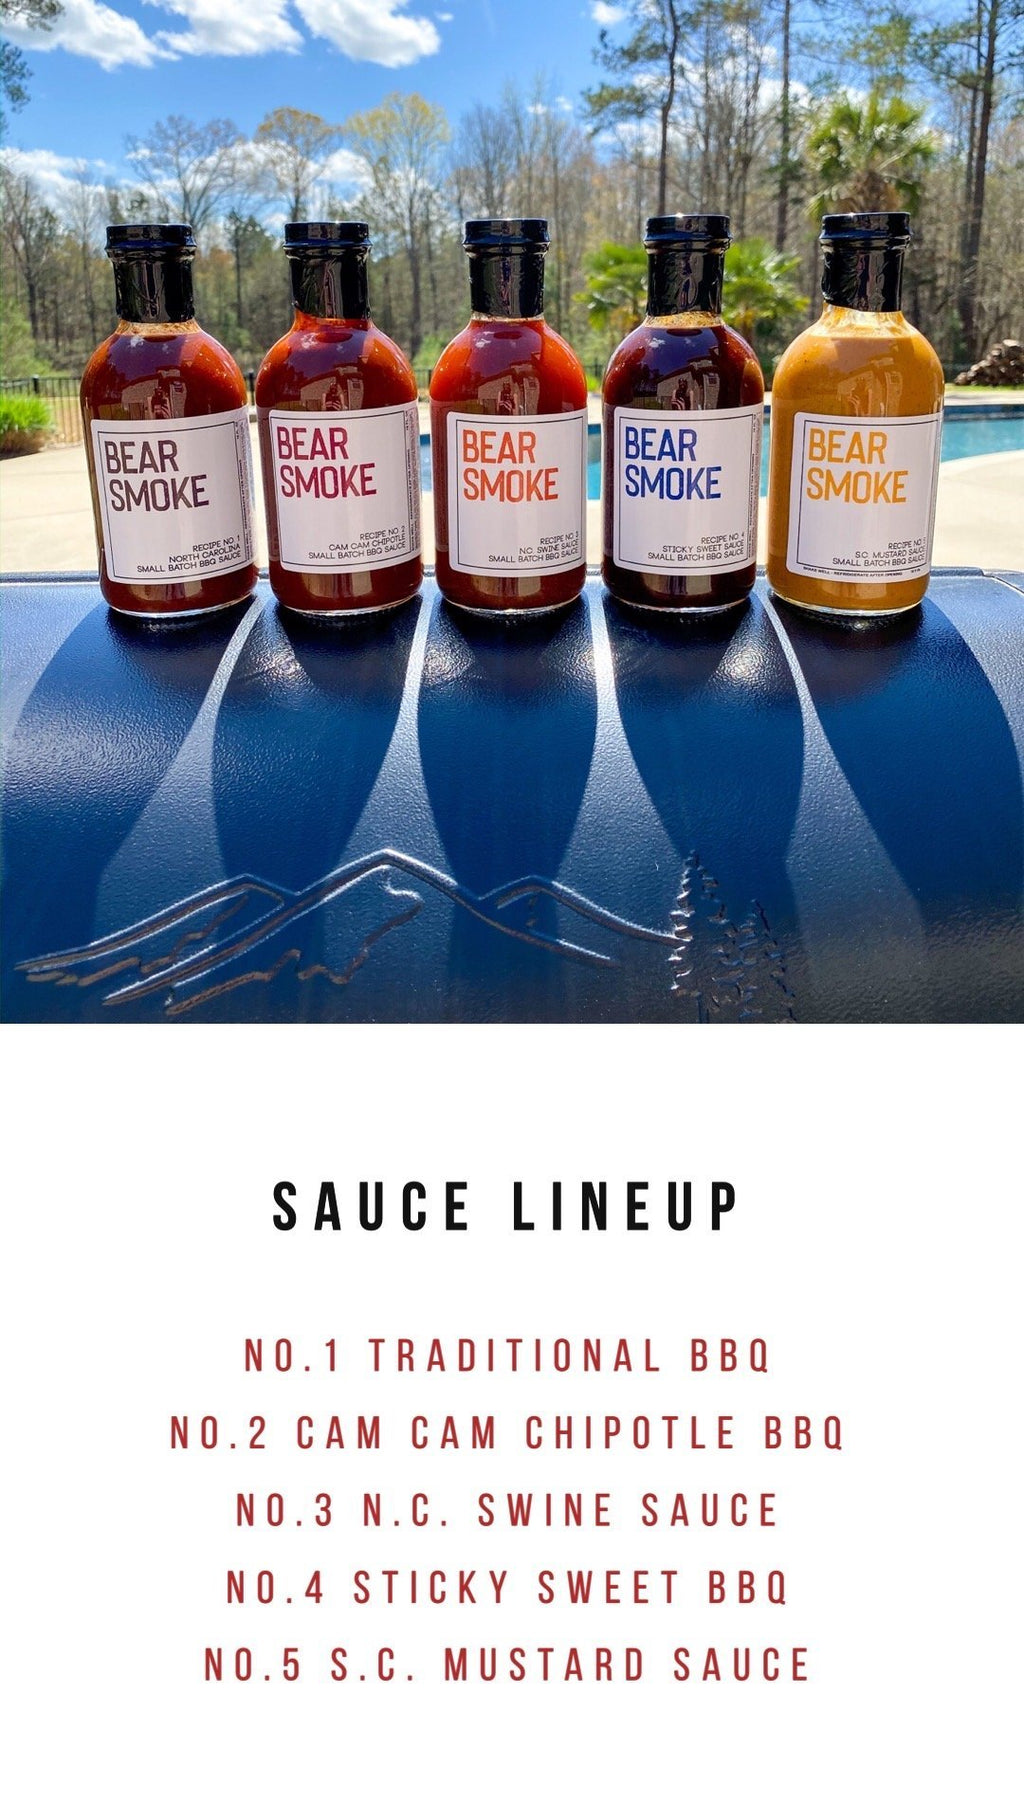 Bear Smoke BBQ - Hand Crafted Barbecue Sauce Sampler - Bear Smoke BBQ